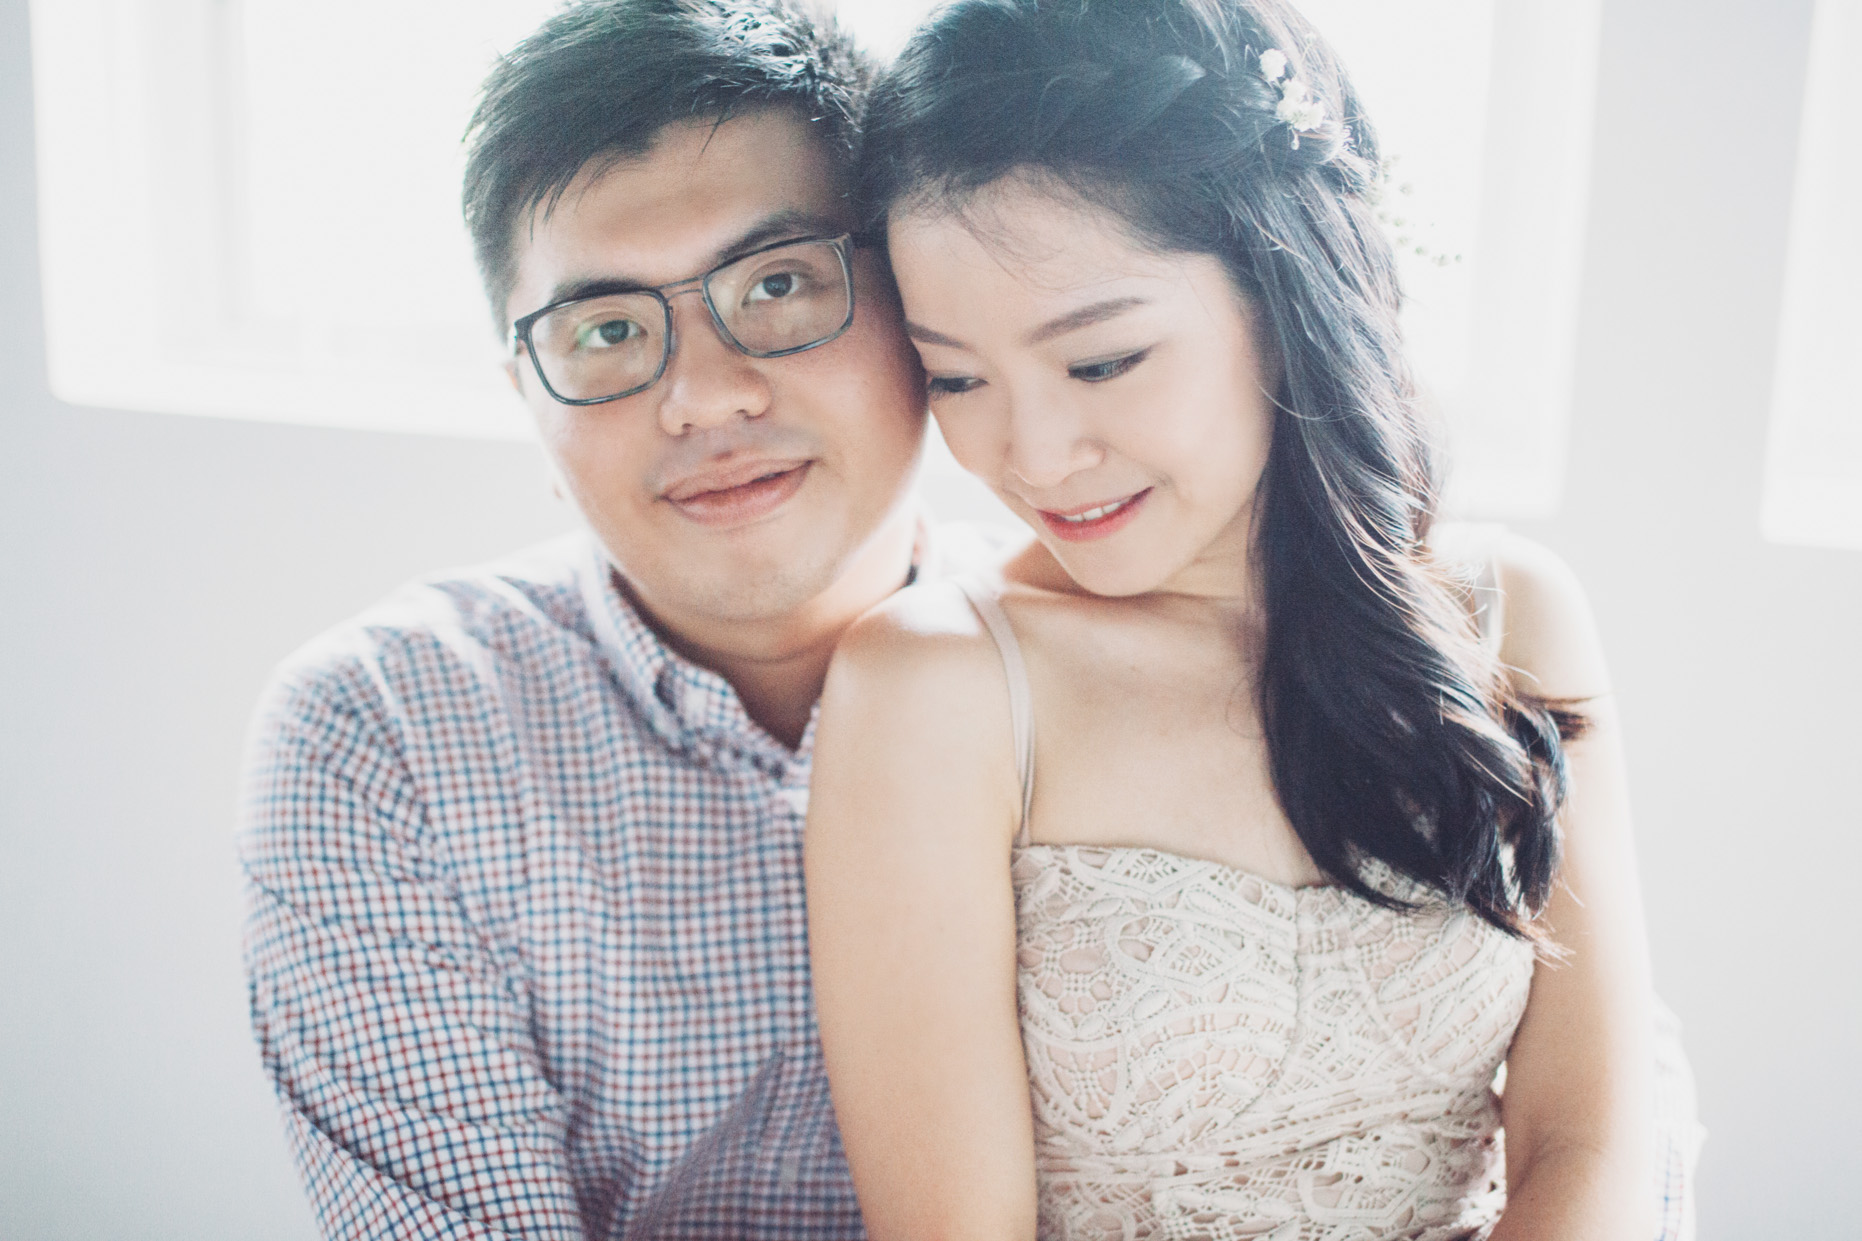 20-hellojanelee-malaysia-wedding-photographer-lake-garden-tinajackson-prewedding